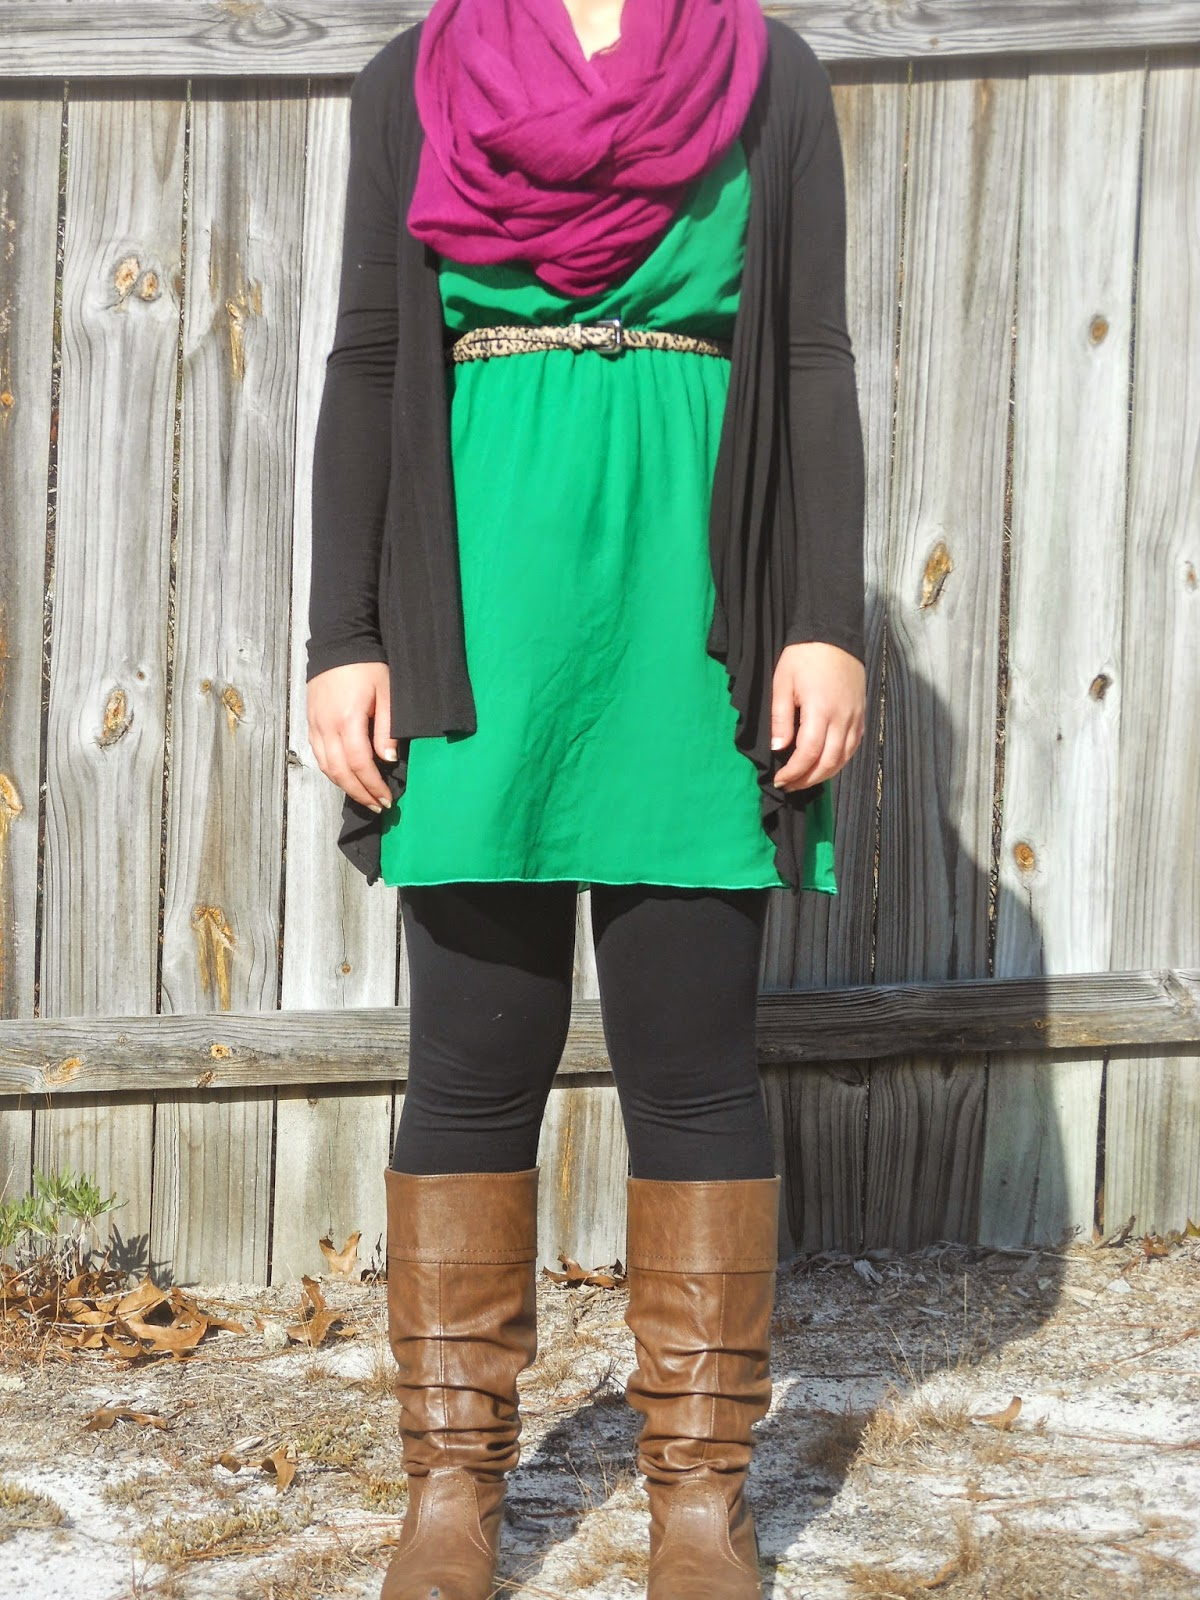 How to Wear a Dress in Winter || 01. green dress, purple infinity scarf, leopard belt, black leggings, brown boots, black cardigan.